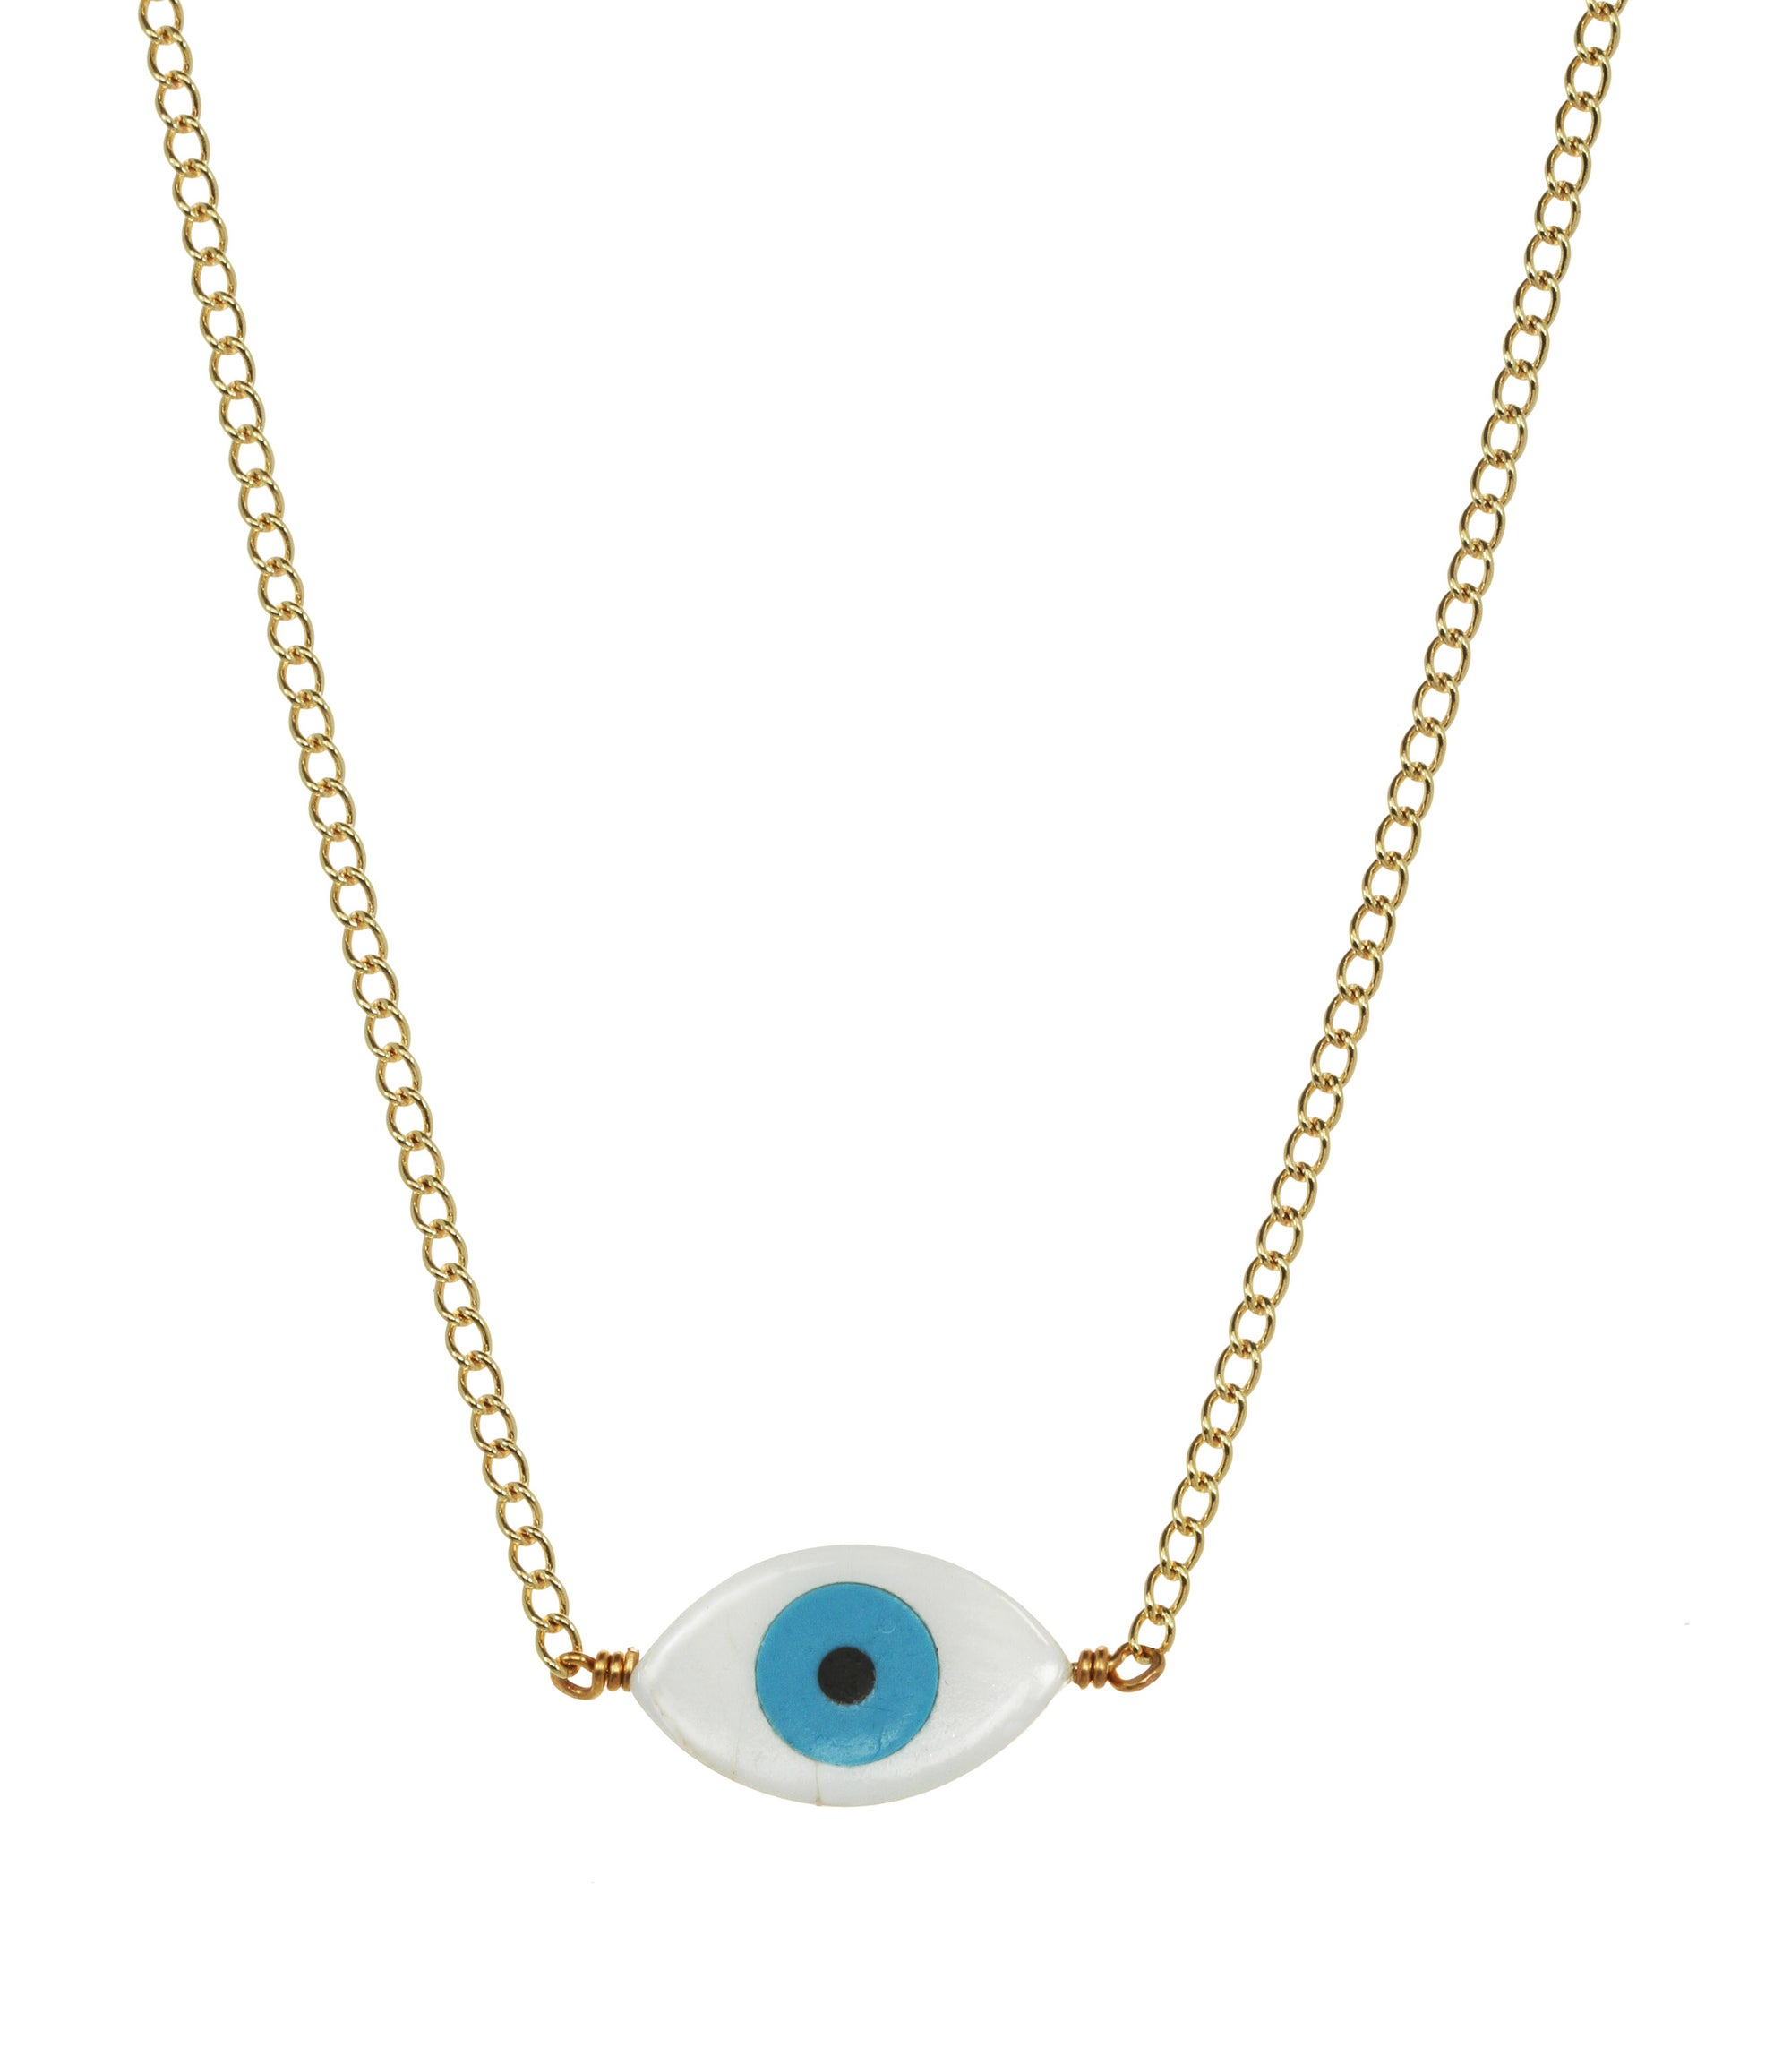 We see stars jewelry evil eye protection choker necklace image of evil eye protection choker necklace aloadofball Image collections